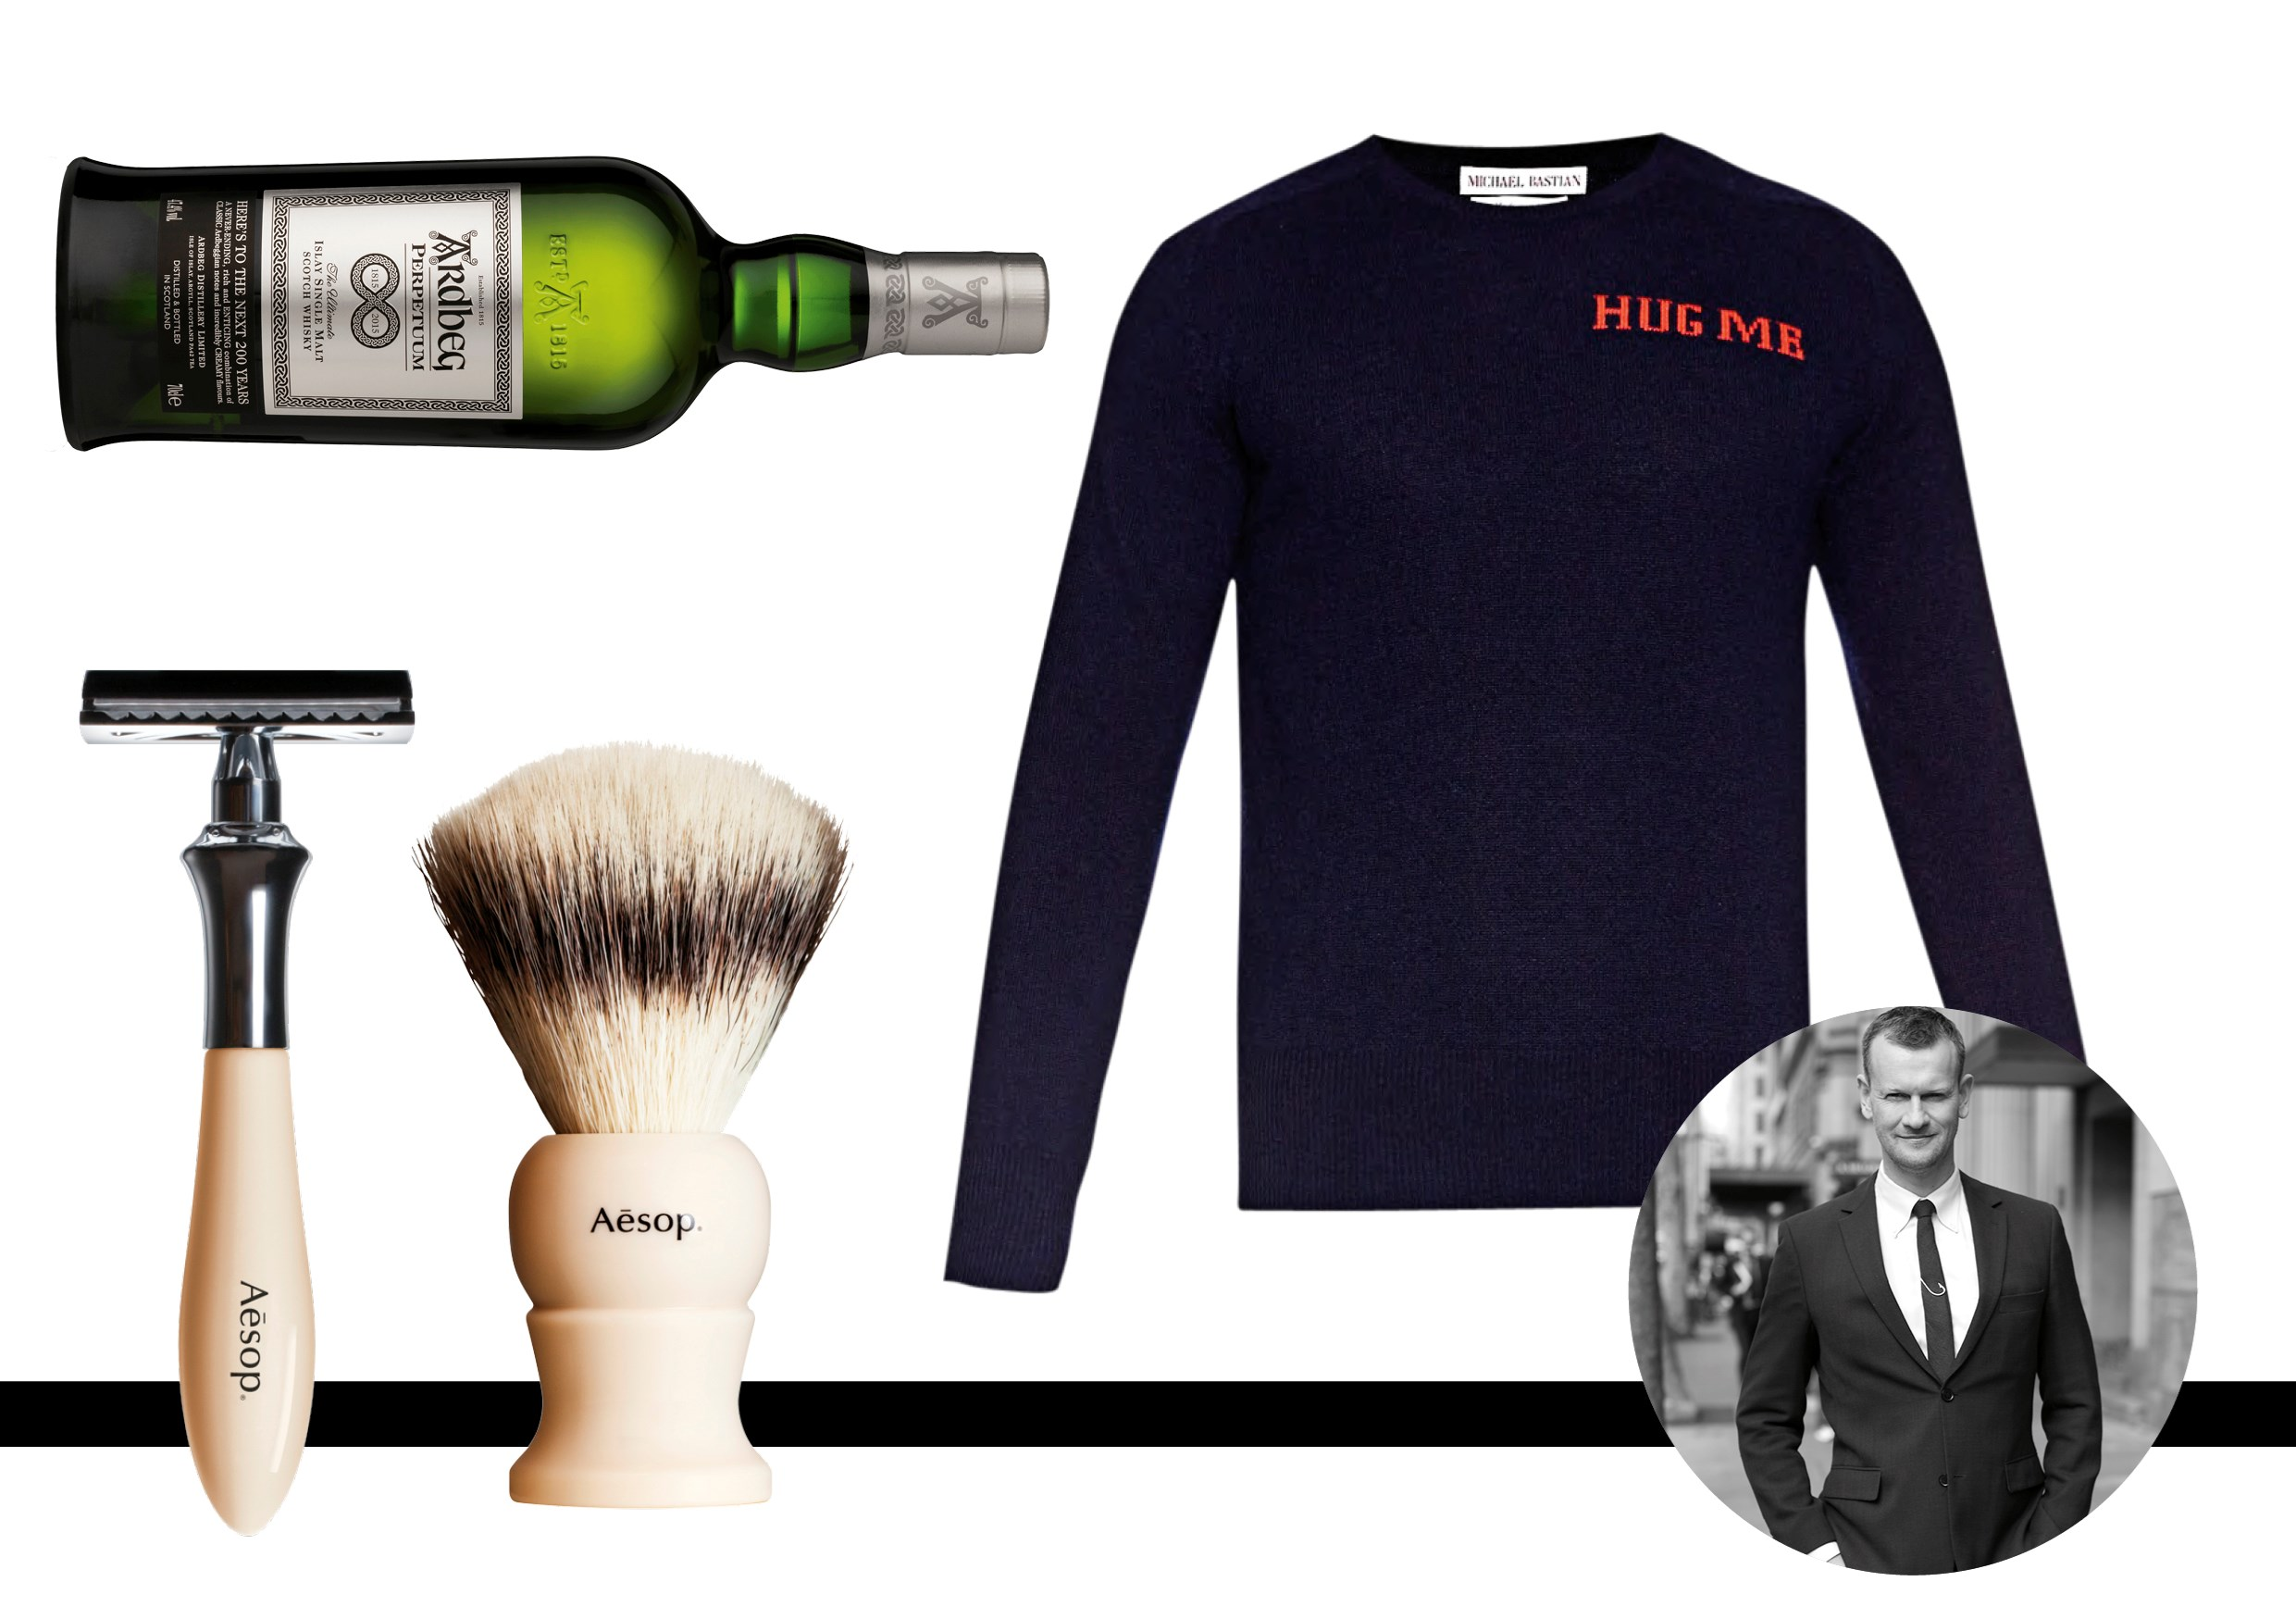 """Damien Woolnough, deputy editor<br> Silver fox designer Michael Bastian knows that every daddy deserves a hug. Hug Me cashmere knit by Michael Bastian, $800 Matchesfashion.com.<br><br> <a href=""""http://www.matchesfashion.com/au/products/Michael-Bastian-Hug-Me-cashmere-knit-sweater--1015153"""">matchesfashion.com</a><br><br> Let hipster dads know that we've reached peak beard with the help of the thoughtful types at Aesop. $105.00   <a href=""""http://www.aesop.com"""">Aesop</a><br><br> Expect this one to need replacing by Christmas. Ardbeg is the gift you can keep giving. This limited edition celebrates the distillery's 200th anniversary. Ardberg whiskey, $169.00,  <a href=""""http://www.moet-hennessy-collection.com.au"""">Moet Hennessy</a>"""